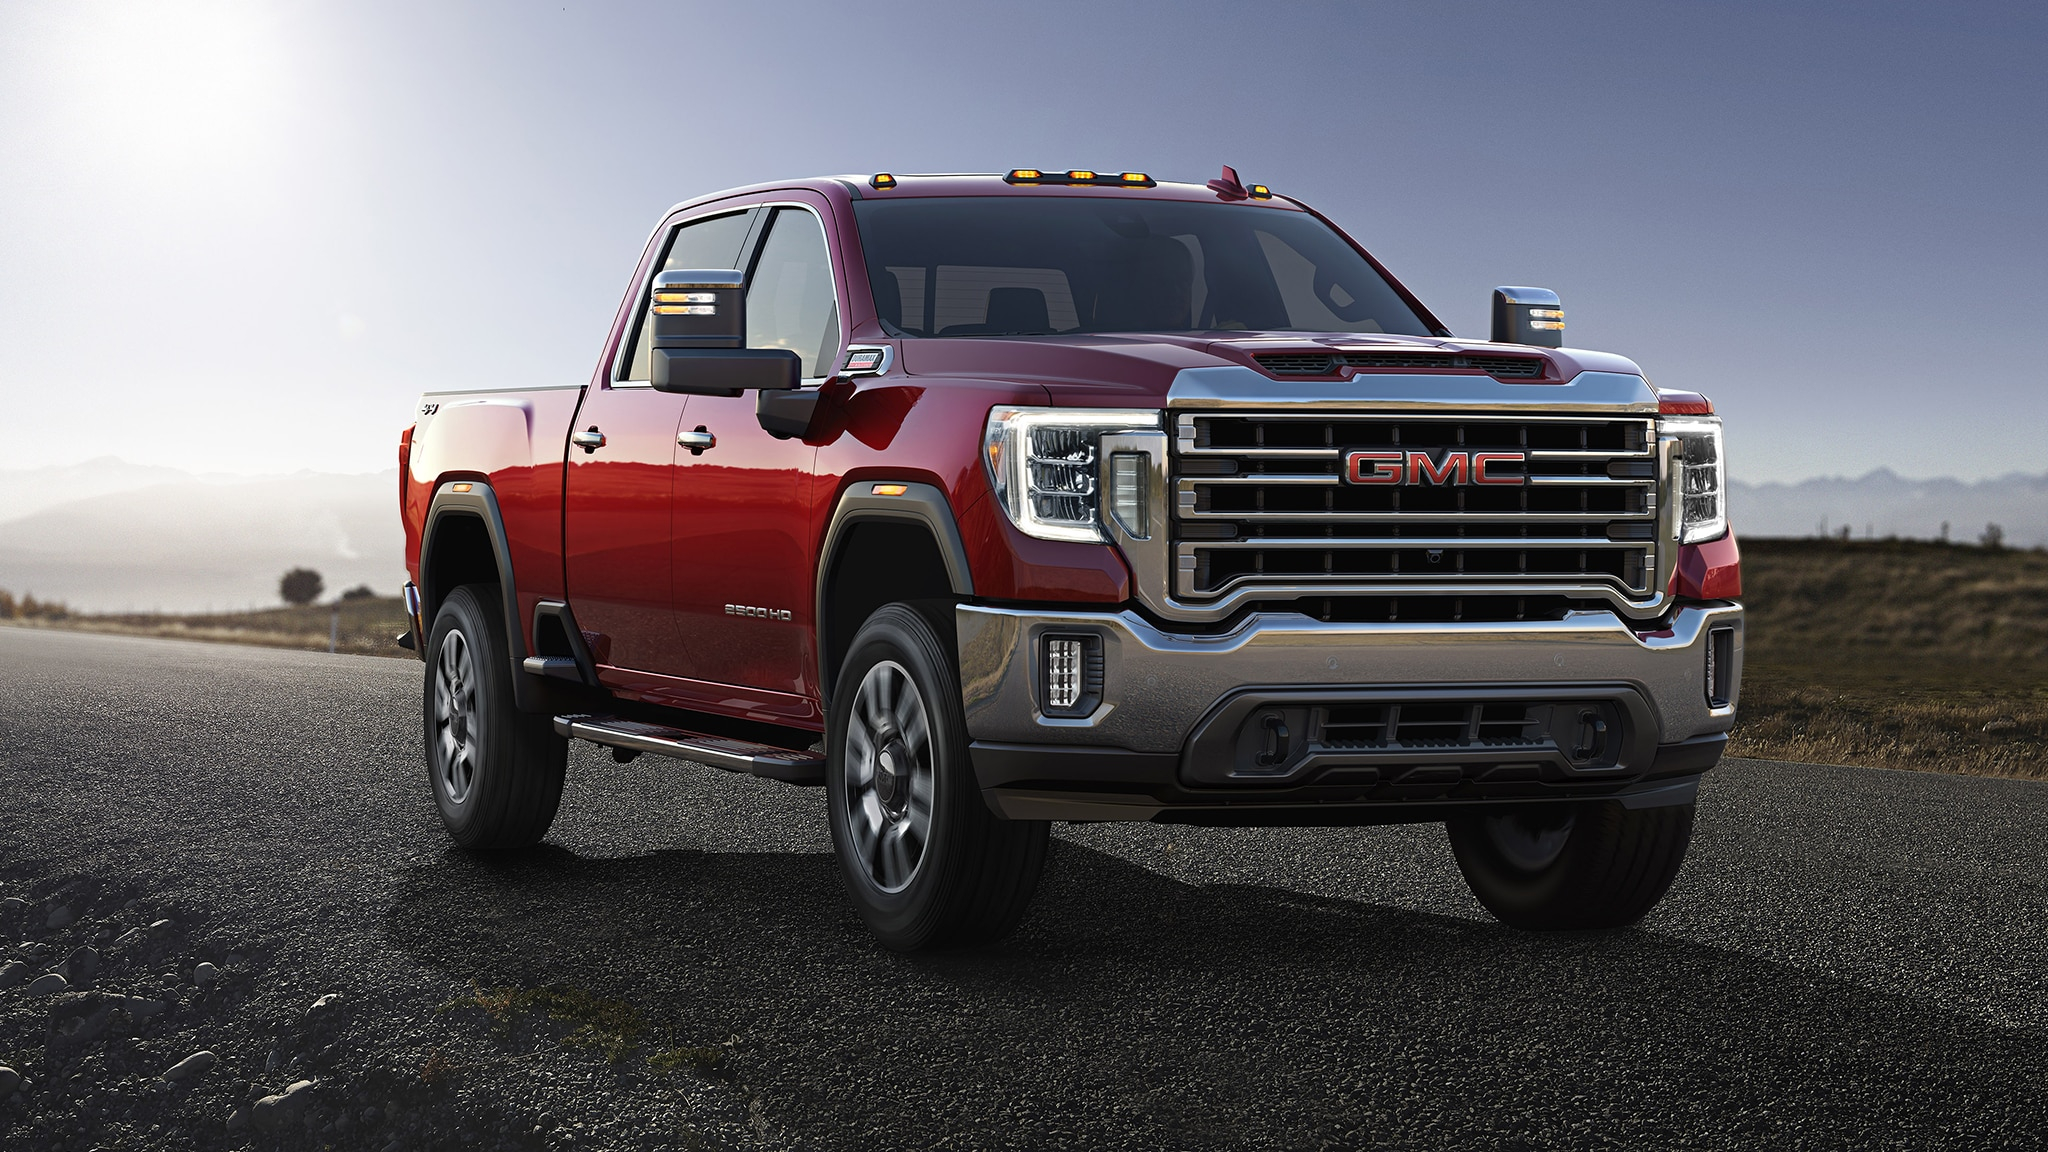 2020 Gmc Sierra Hd First Look: Heavy-Duty Competition 2020 Gmc 2500 Build And Price